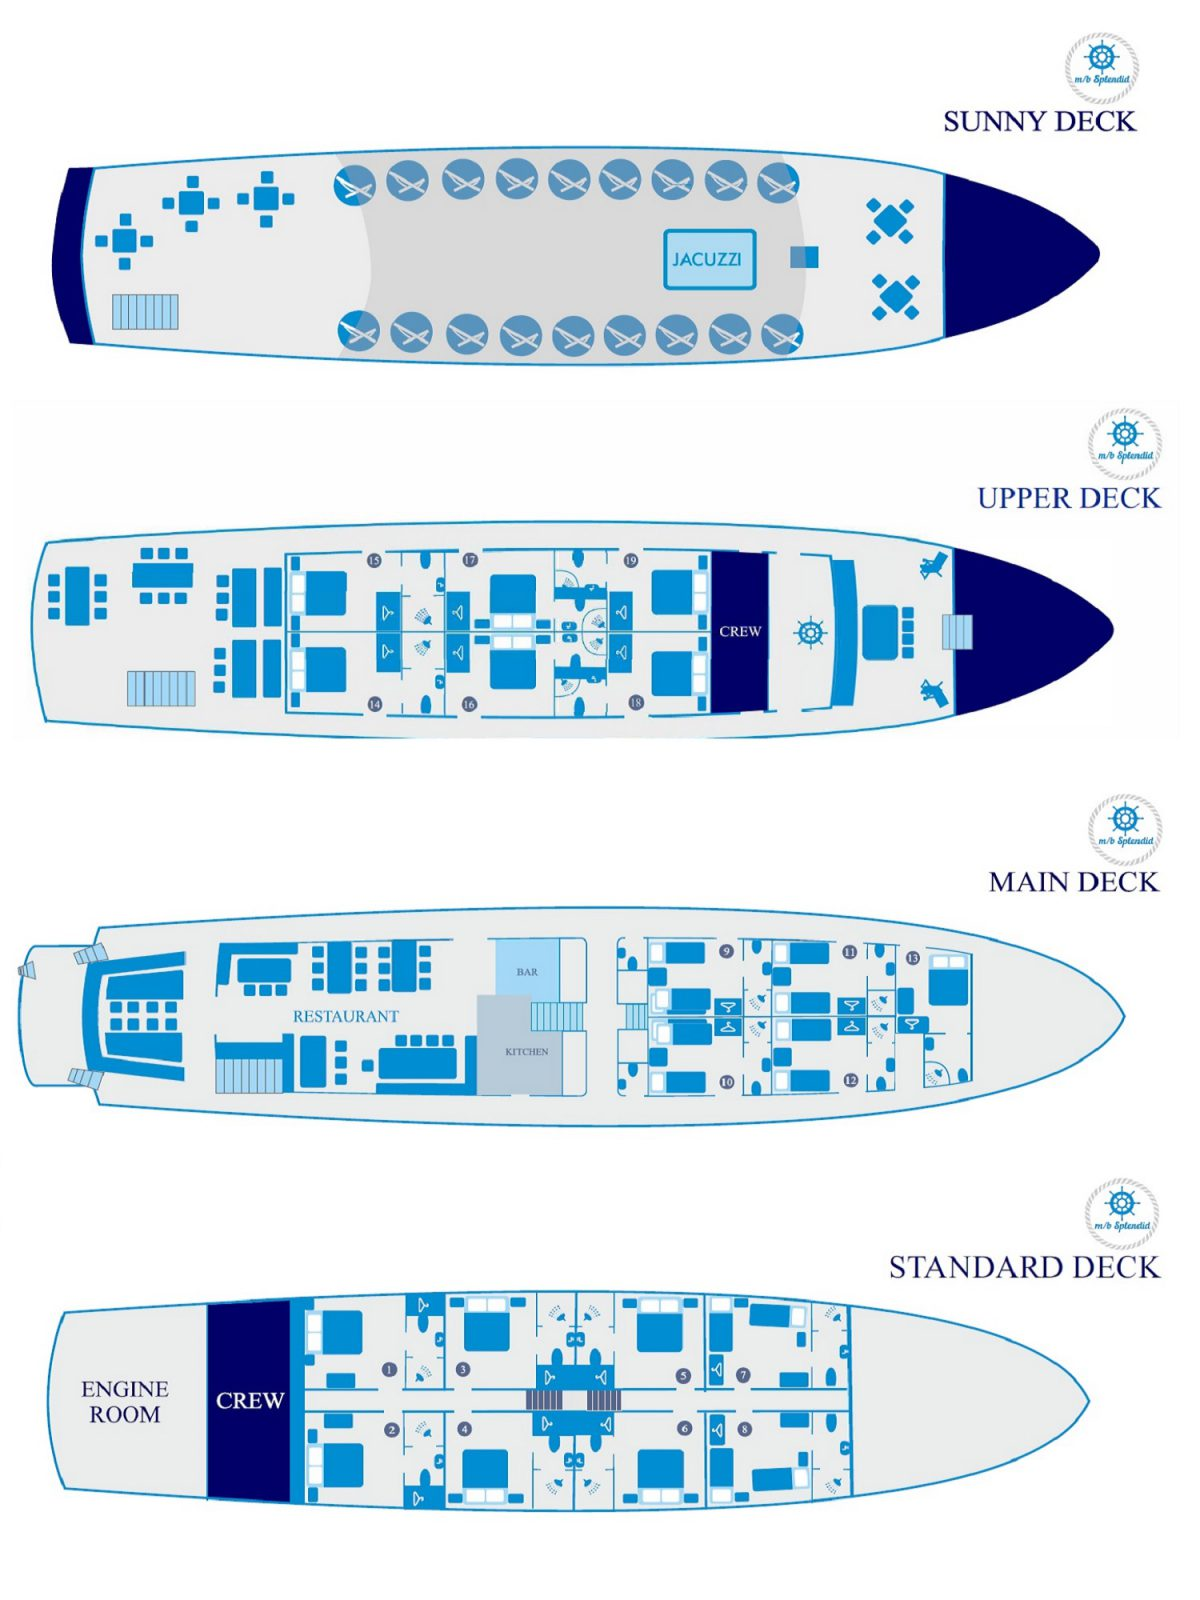 MS Splendid Deck Plan all decks